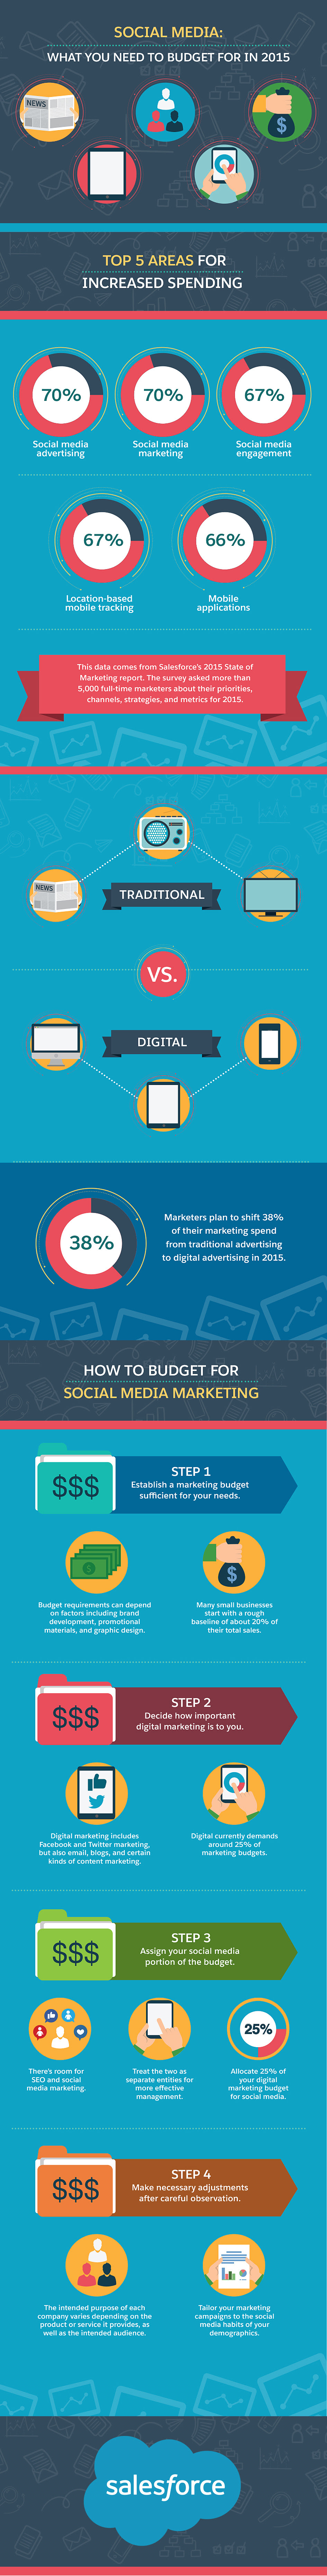 How to budget for #socialmedia marketing - #infographic